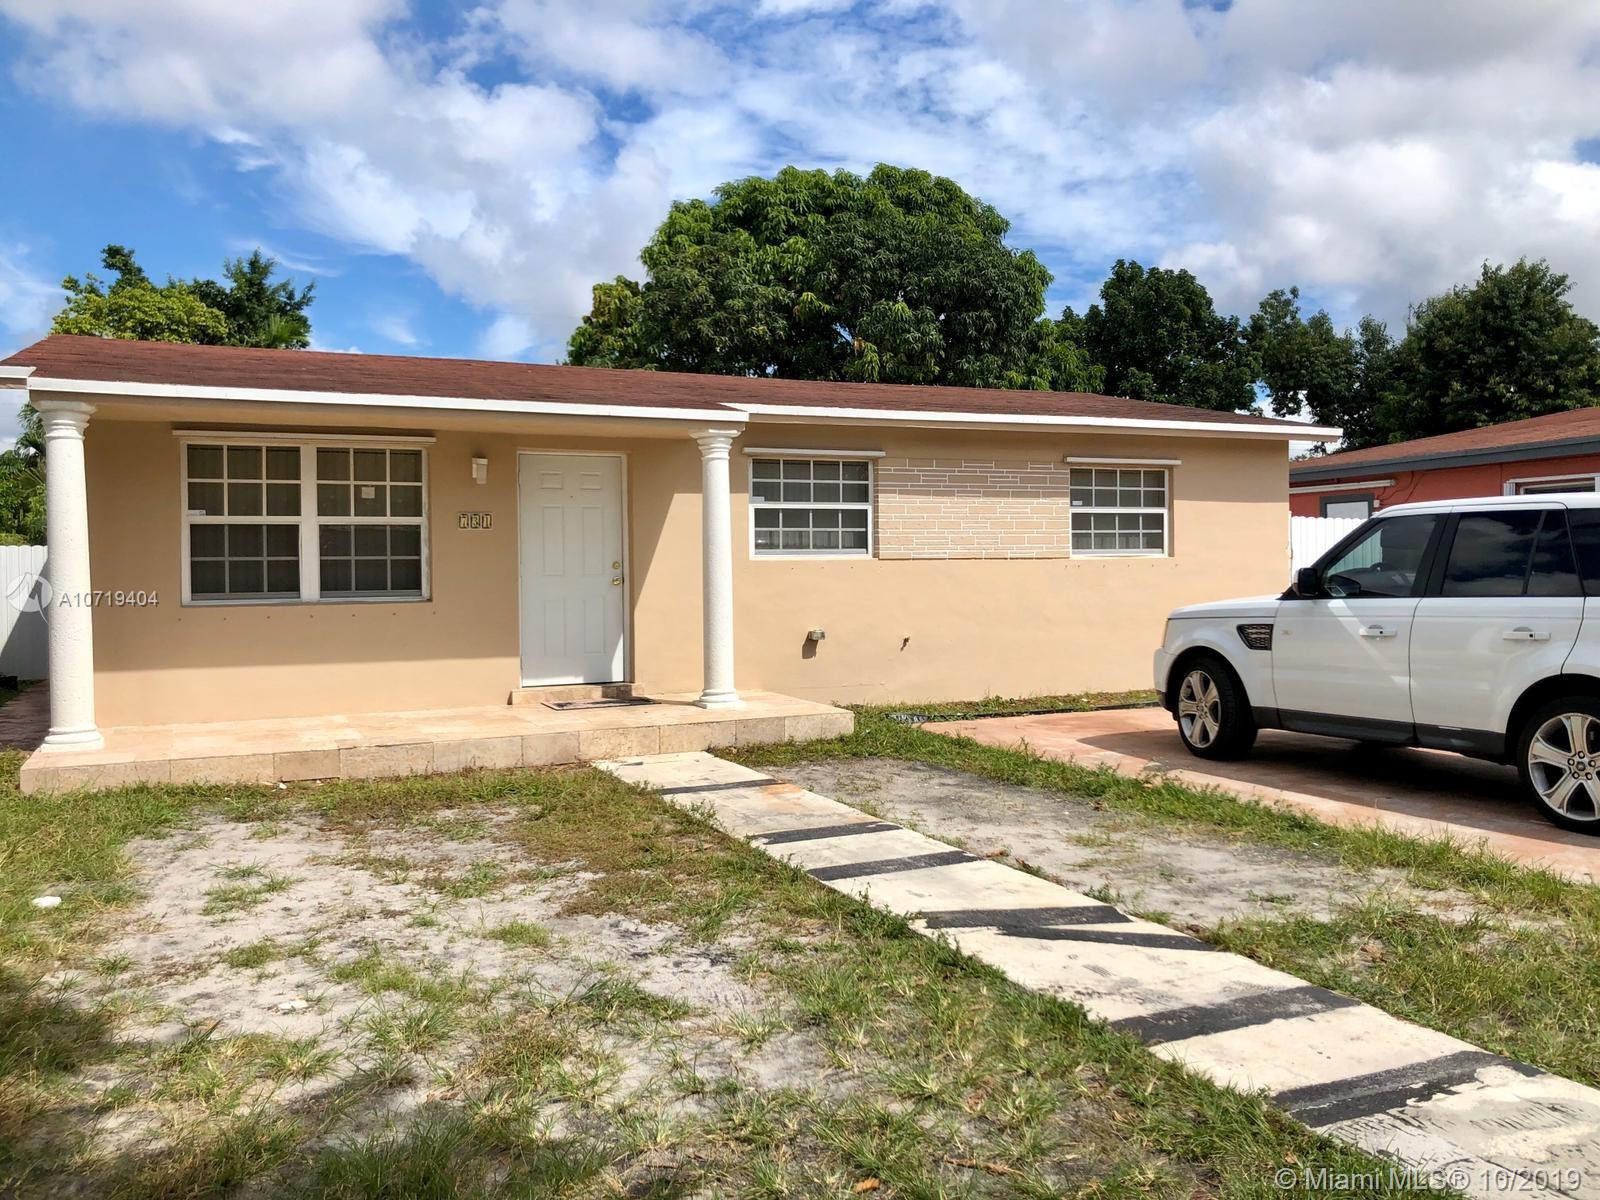 731 W 31st St  For Sale A10719404, FL